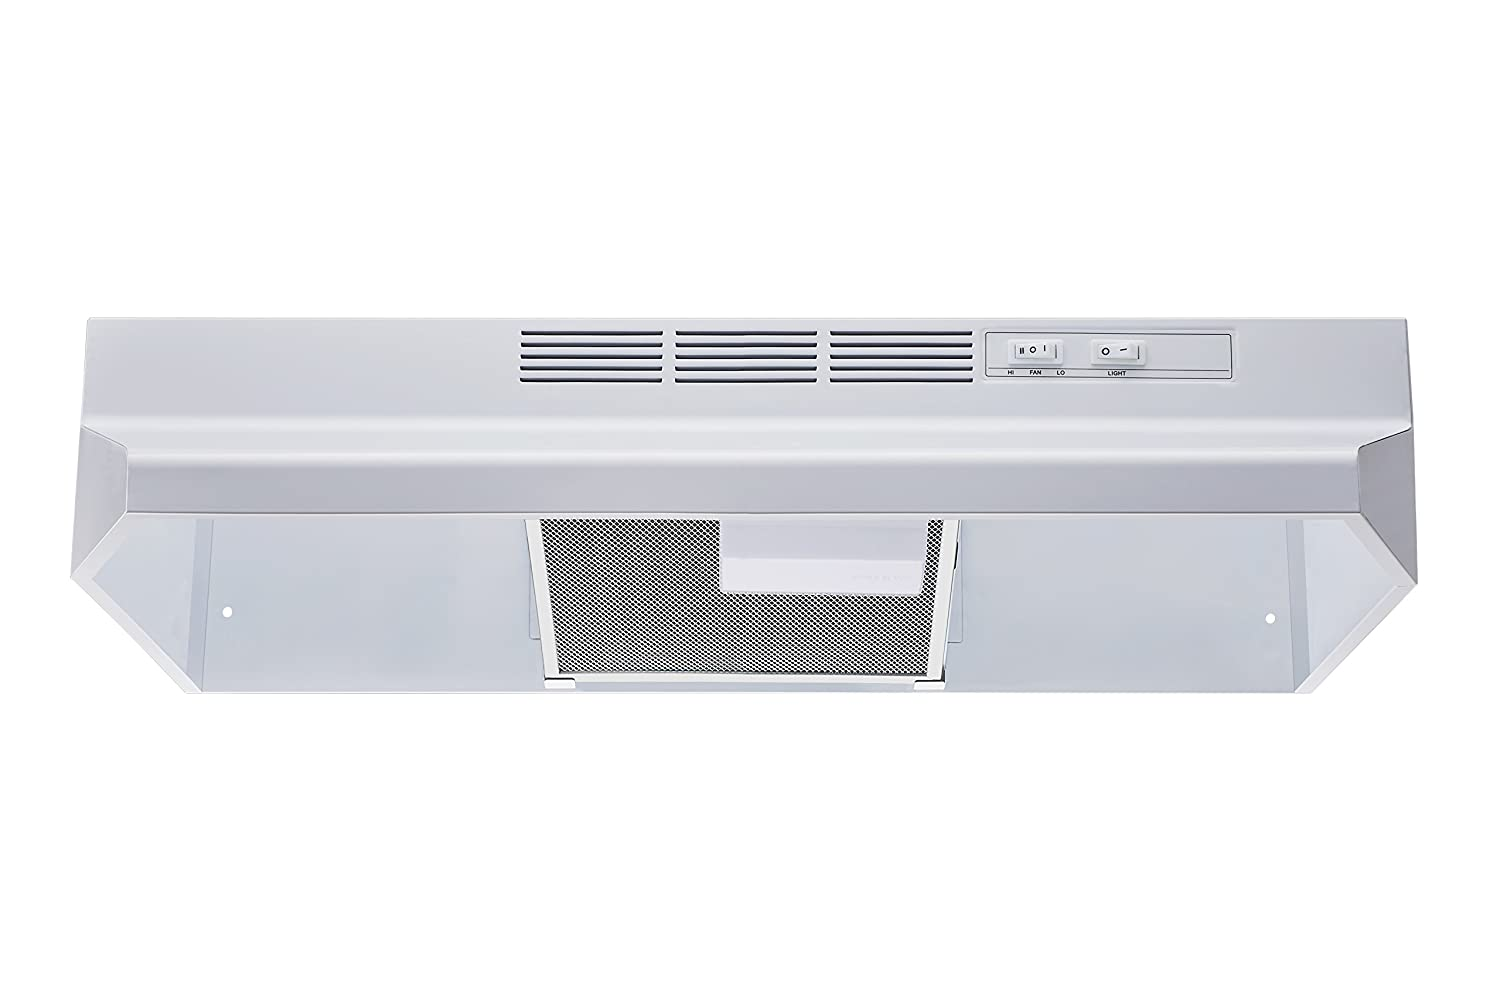 "Winflo New 30"" Ductless/Non-Ducted Under Cabinet Range Hood in White Color with Mesh Charcoal Filter"